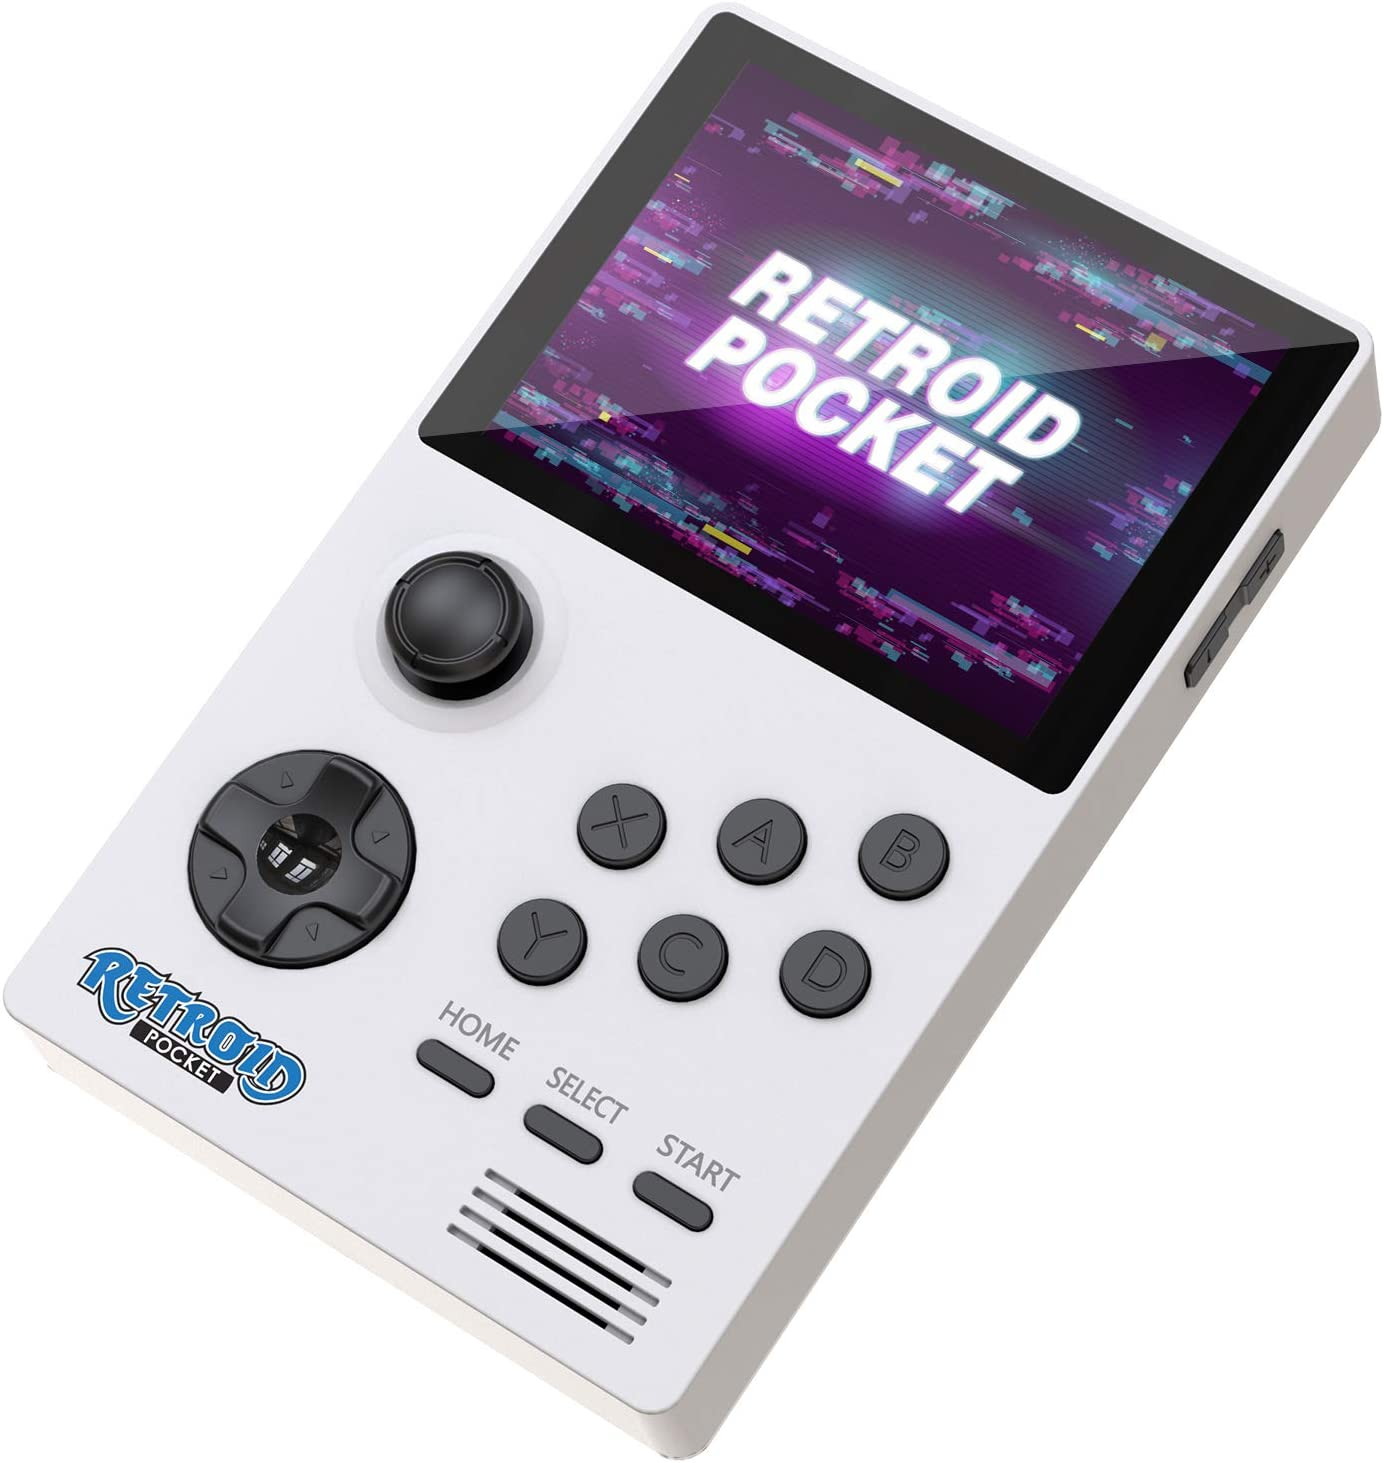 NEXADAS Retroid Pocket Android Handheld Game Console, Dual Boot Retro Game Console with 4000 mAh Large Capacity Battery, HDMI Output for TV Display, for Kids (White 32GB Version)